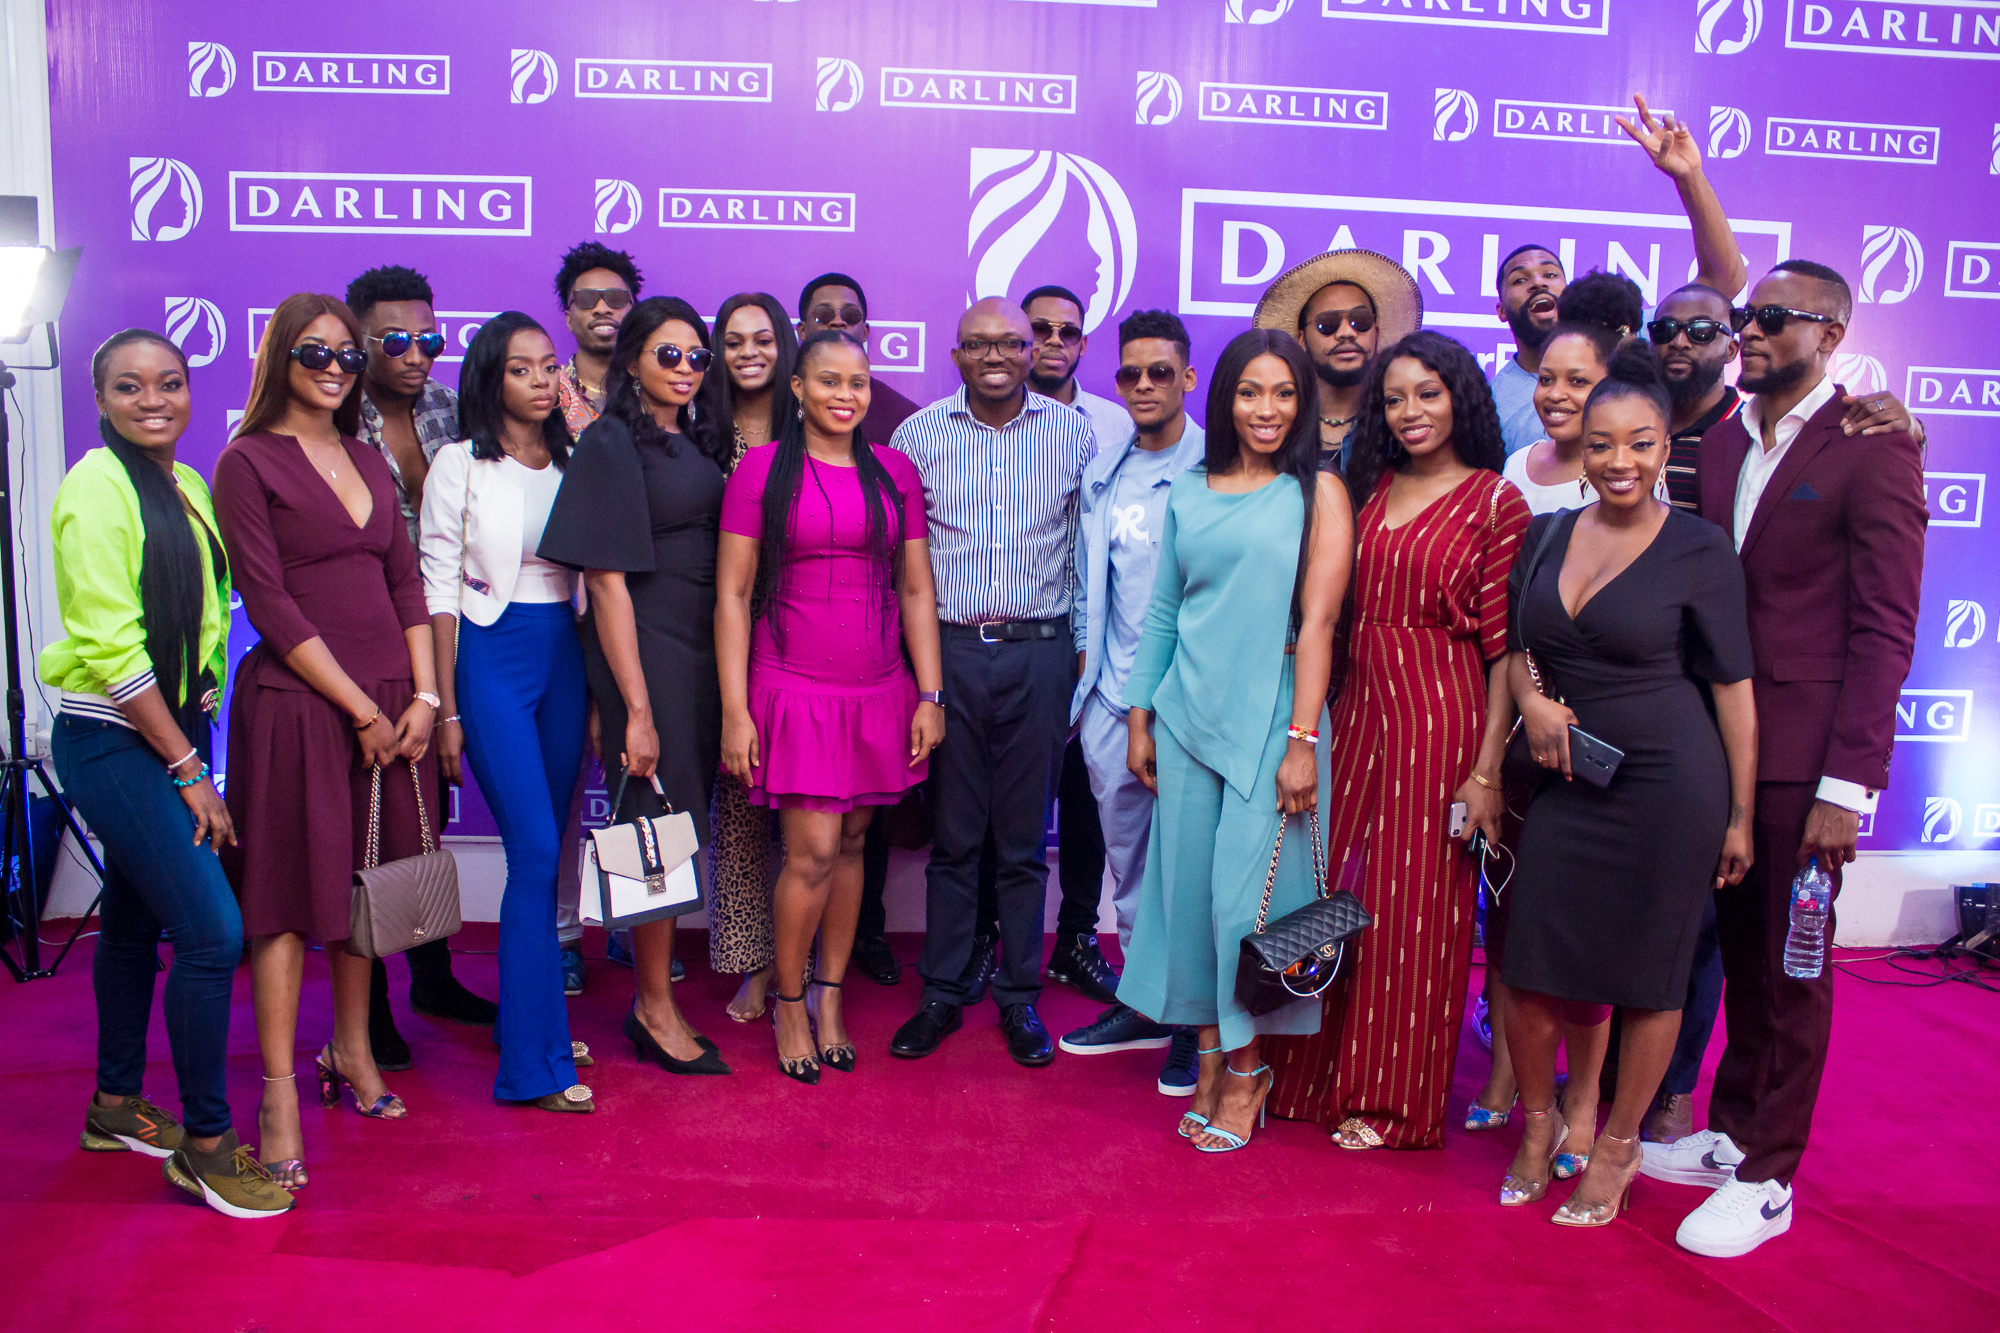 #BBNaija Housemates pay Courtesy Visit to Darling Nigeria + We've got all the photos